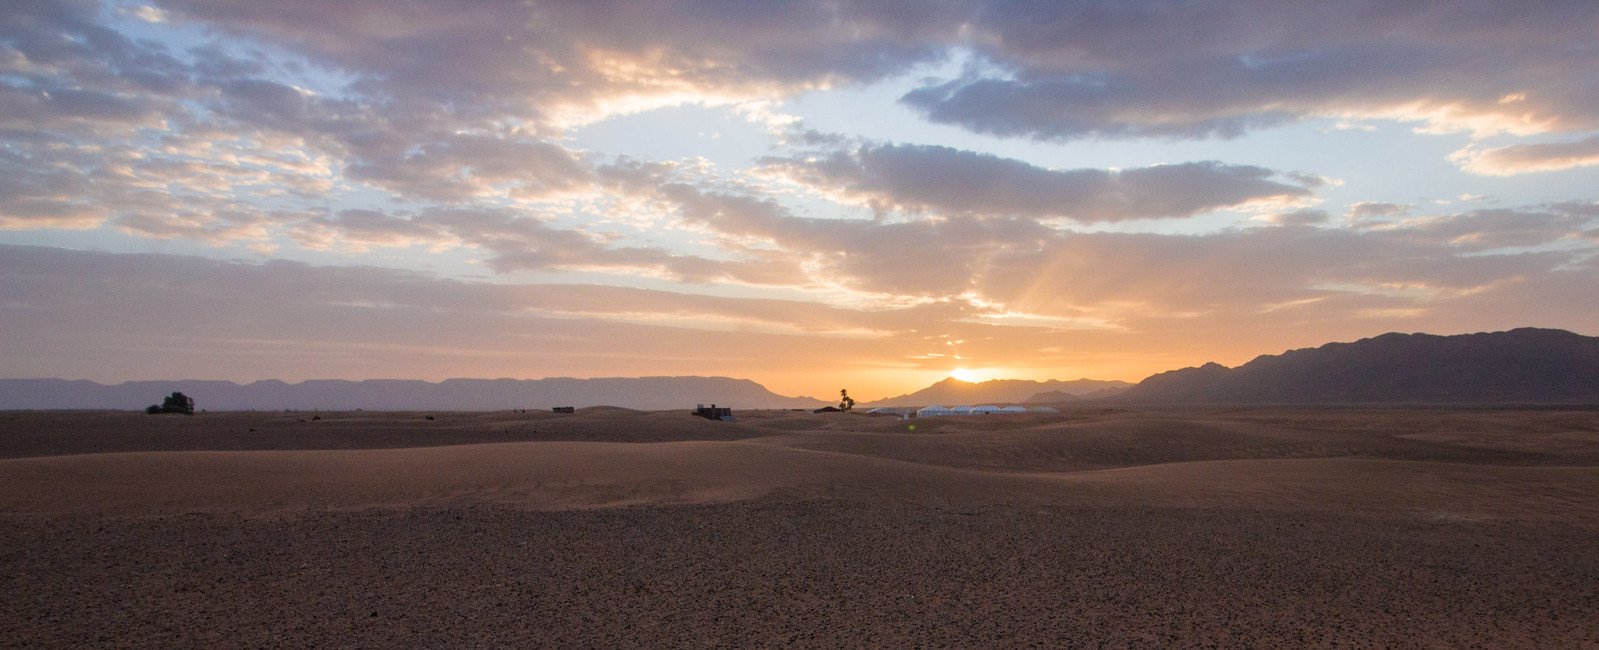 Sunrise in the Sahara Desert, Zagora, Morocco.